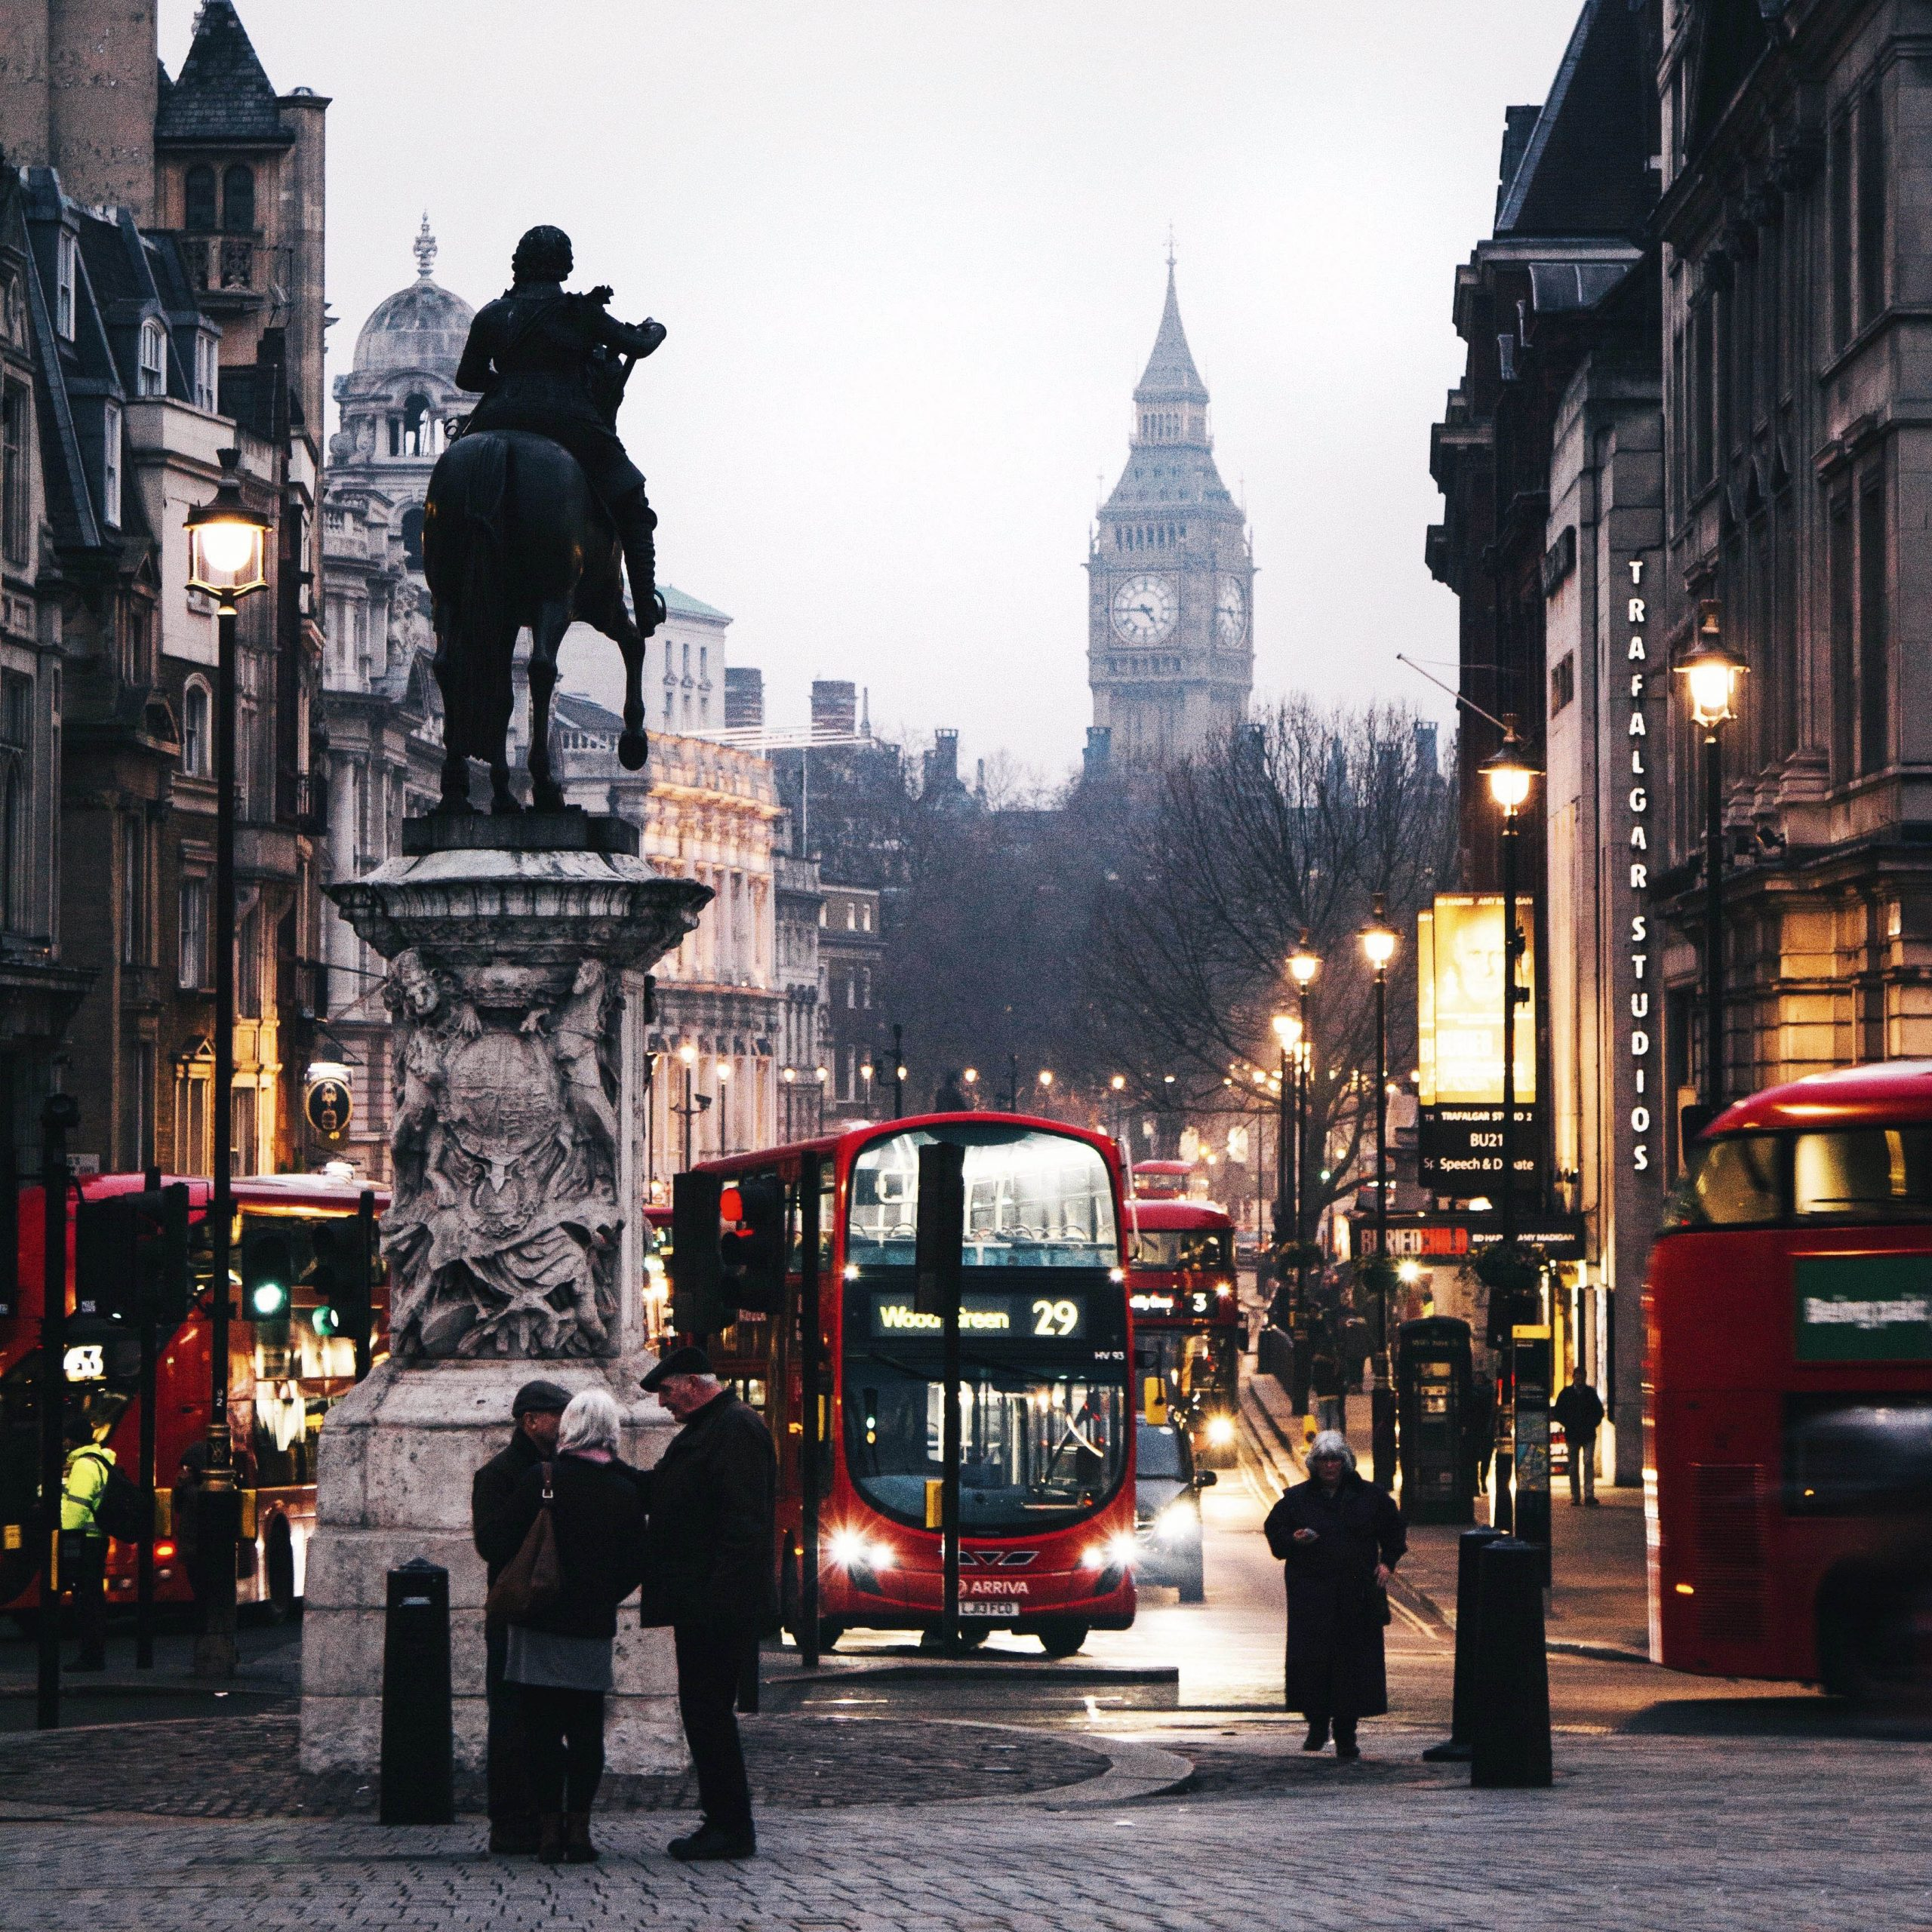 A London corner. photo by Ross Mowbray